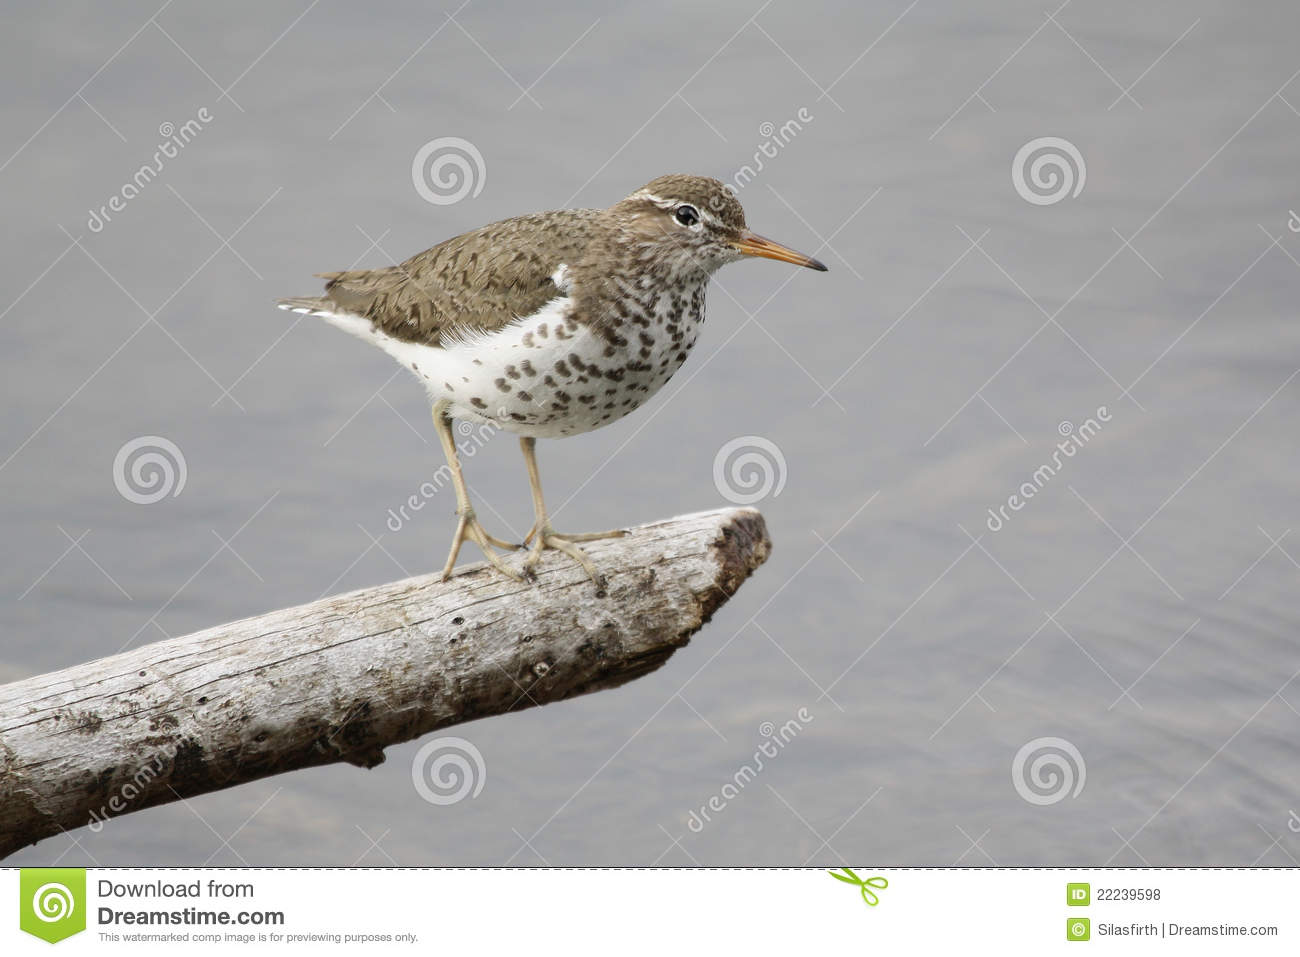 Spotted Sandpiper clipart #7, Download drawings